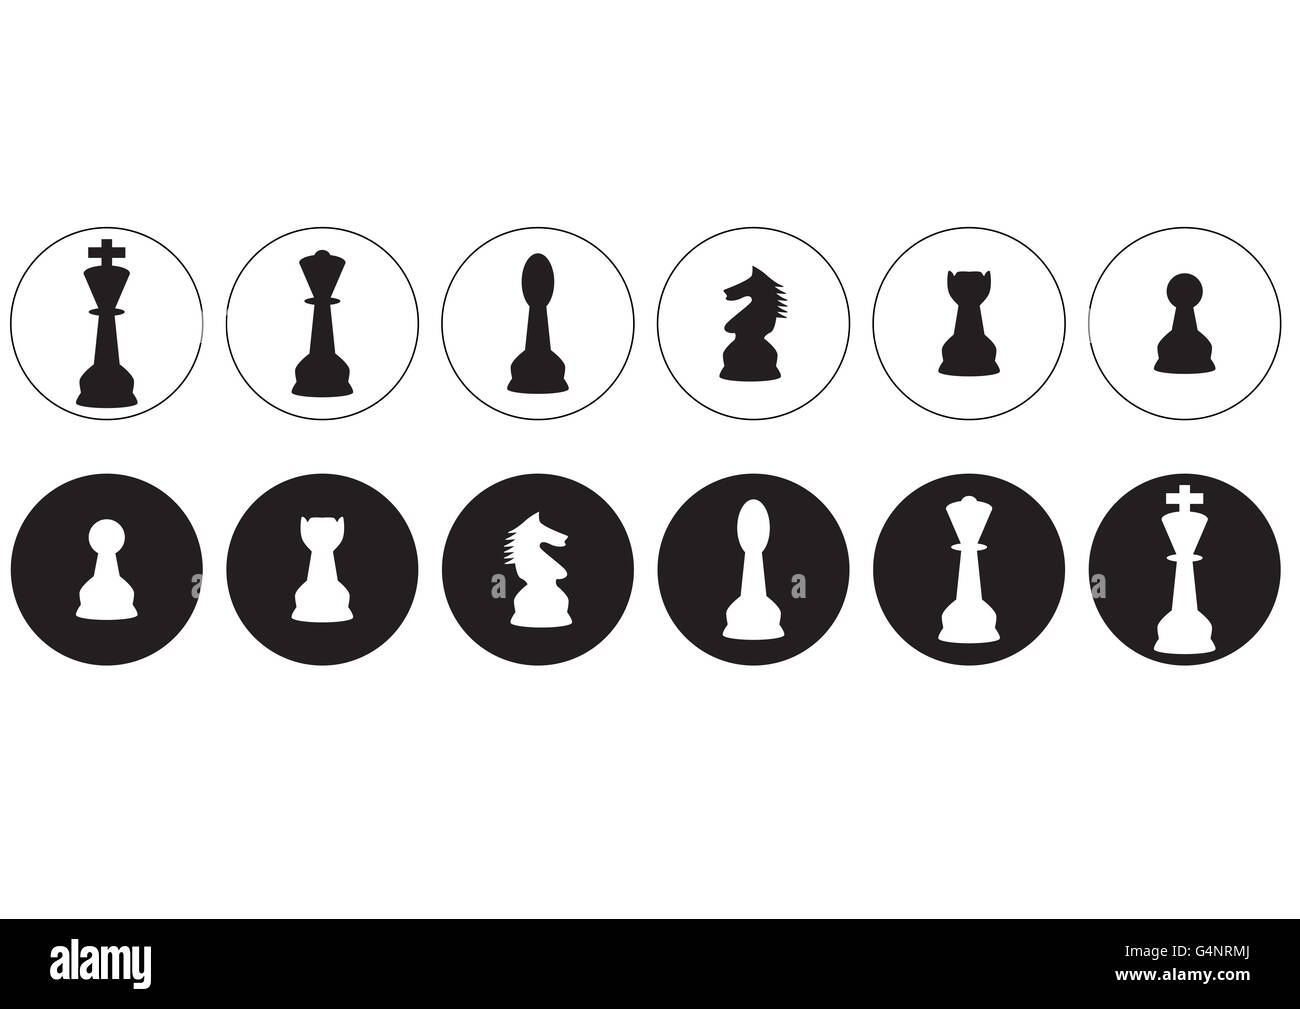 vector silhouettes of a set of standard chess pieces icons - Stock Image